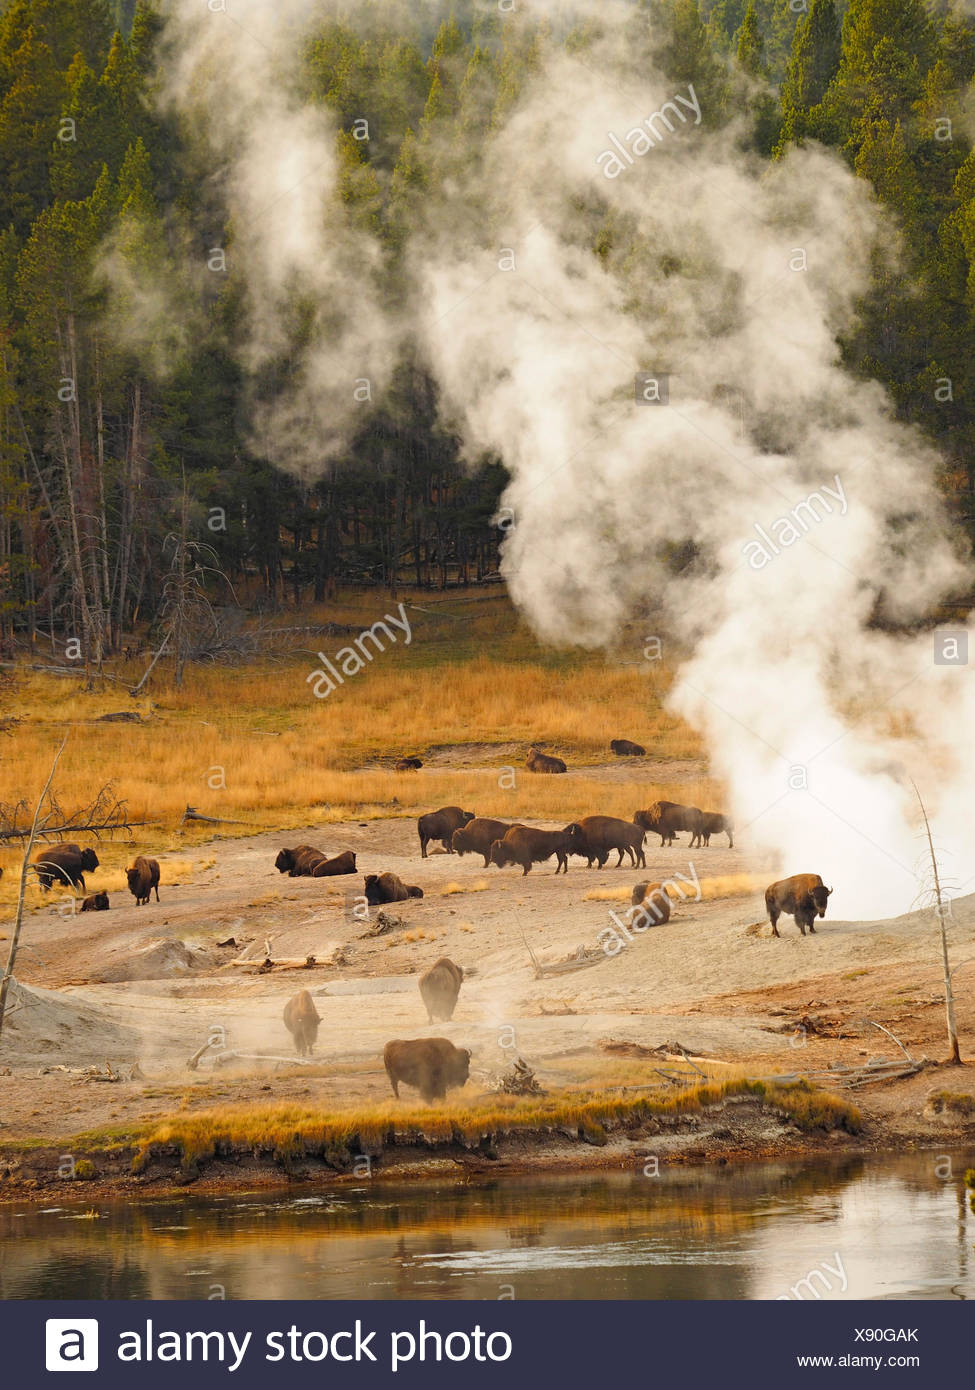 American bison, buffalo (Bison bison), herd of buffalos in front of hot springs, USA, Wyoming, Yellowstone National Park, West Thumb Geysir Basin Stock Photo